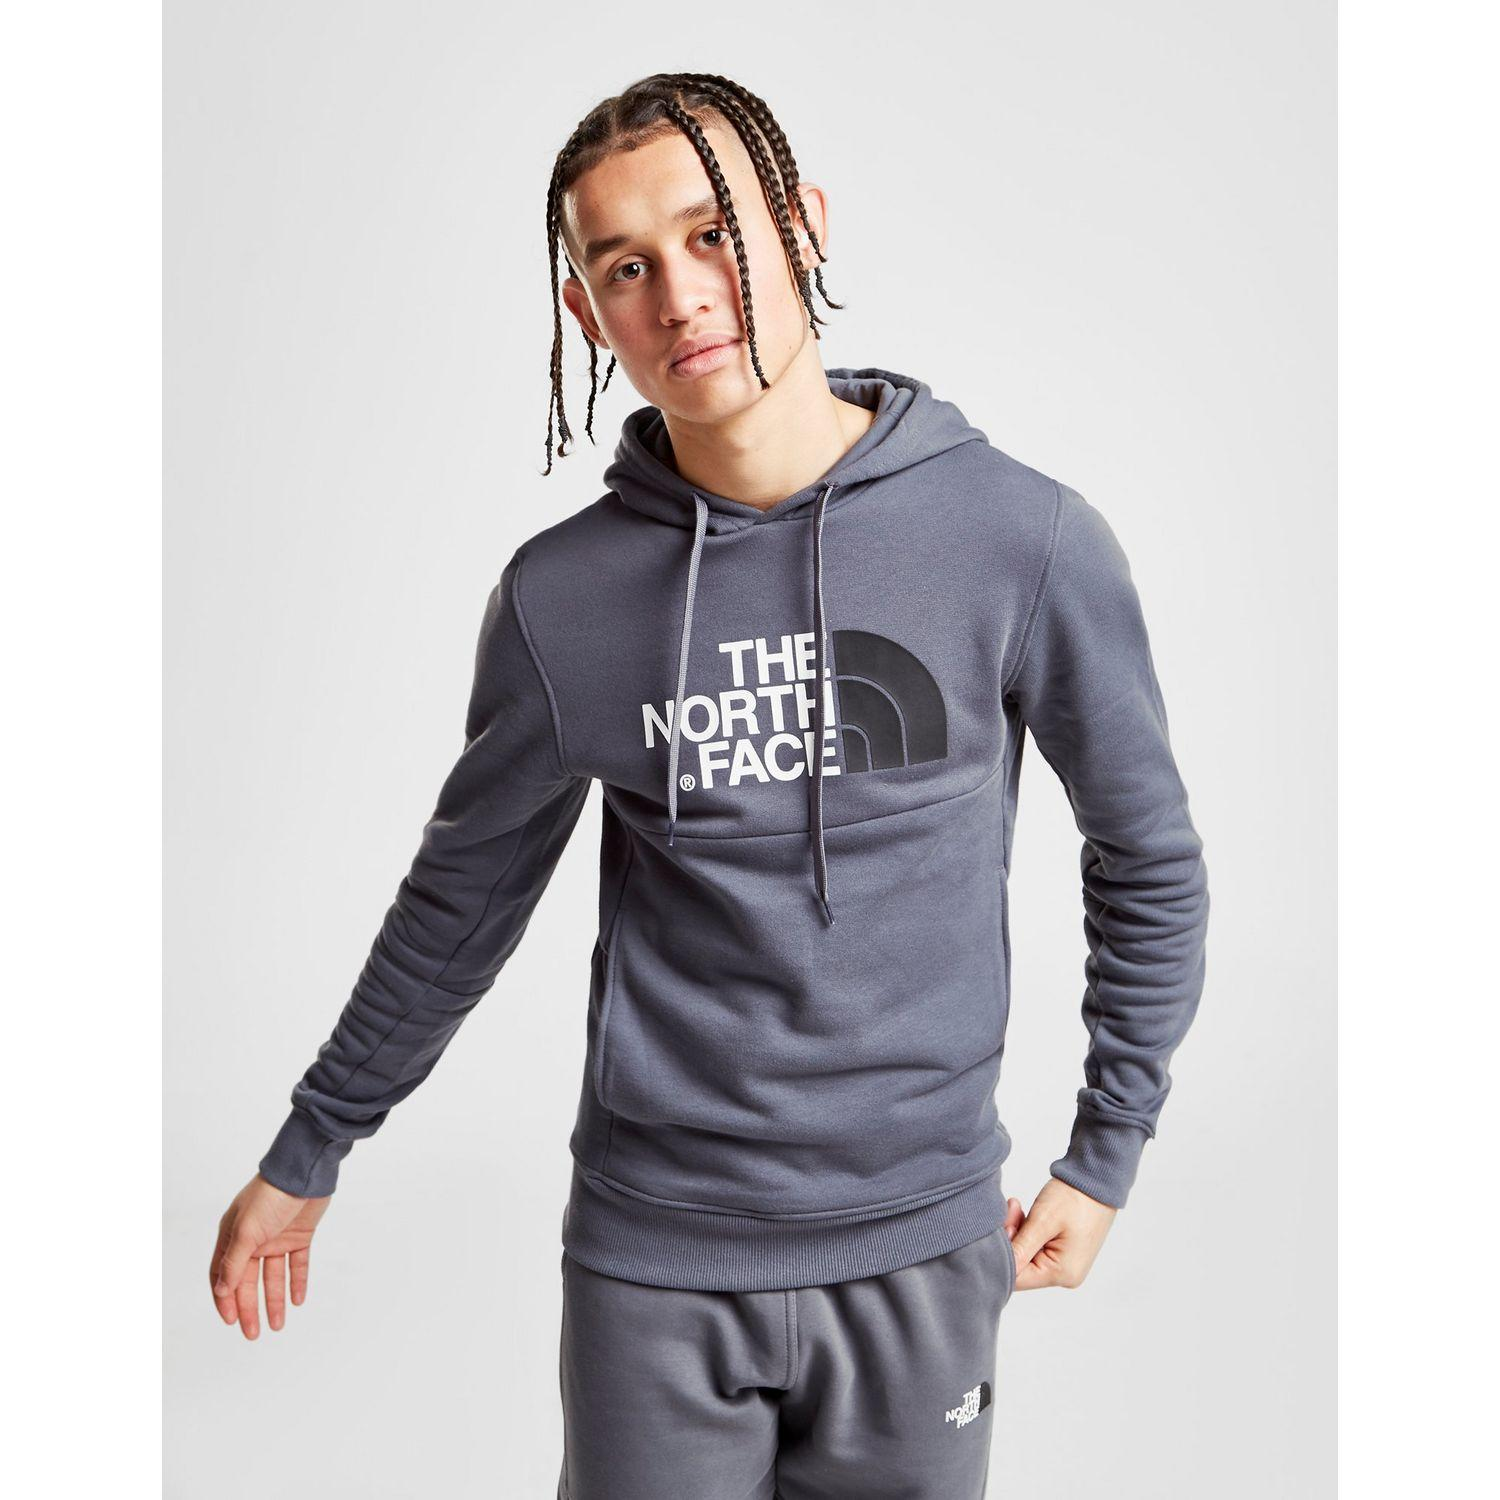 47ad3bd0e The North Face Bondi Overhead Fleece Hoodie in Gray for Men - Lyst